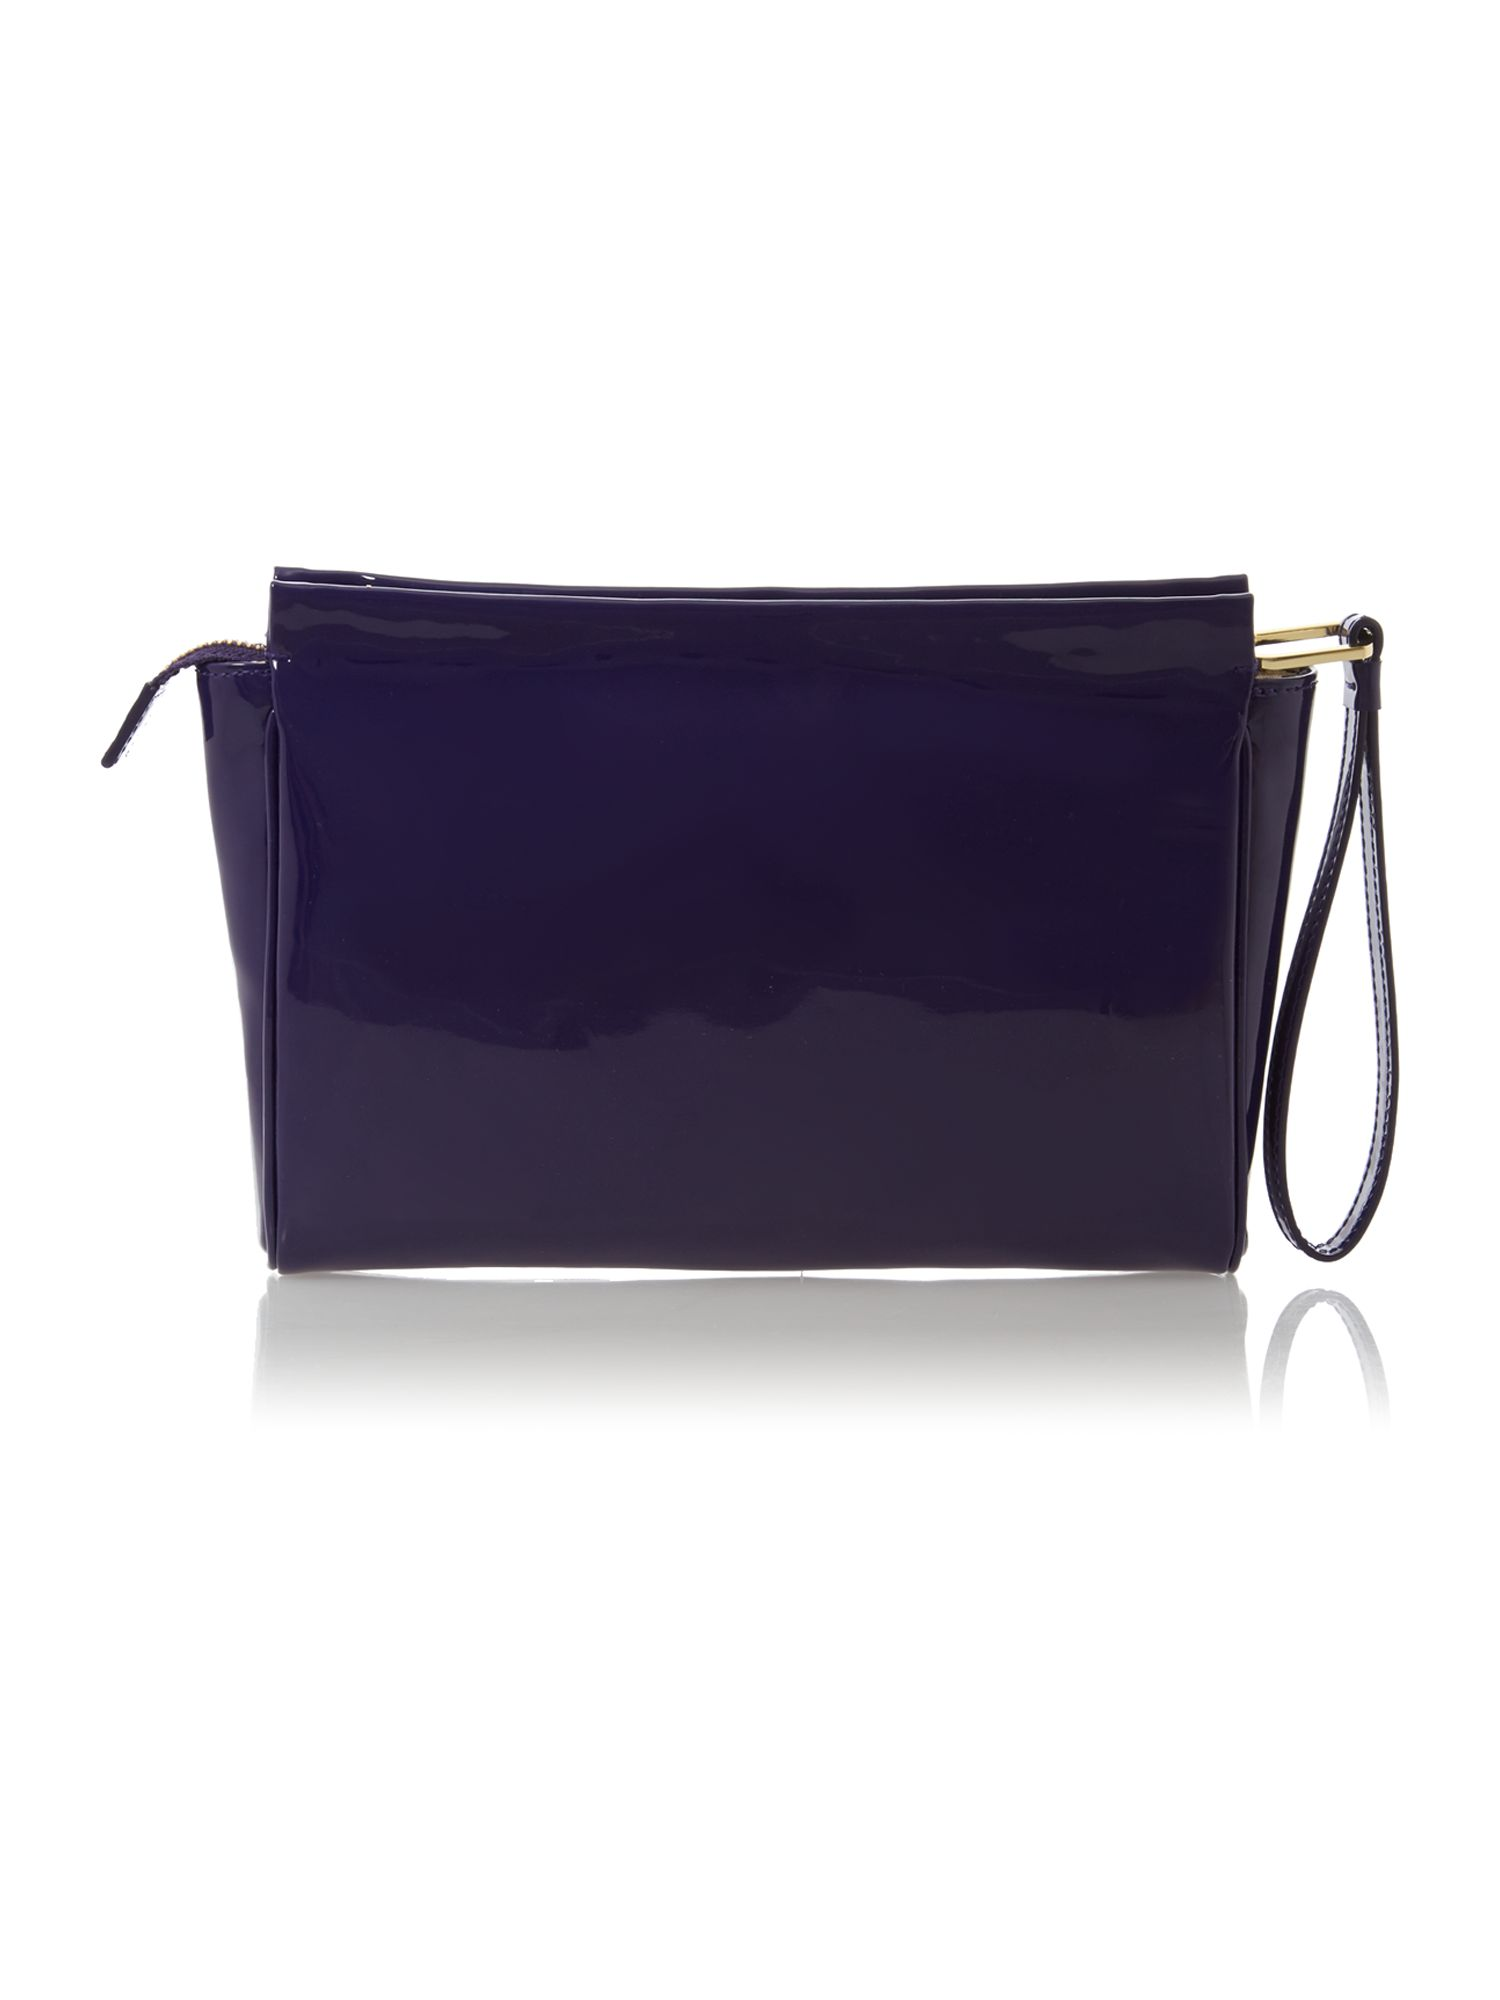 Katie patent purple clutch bag